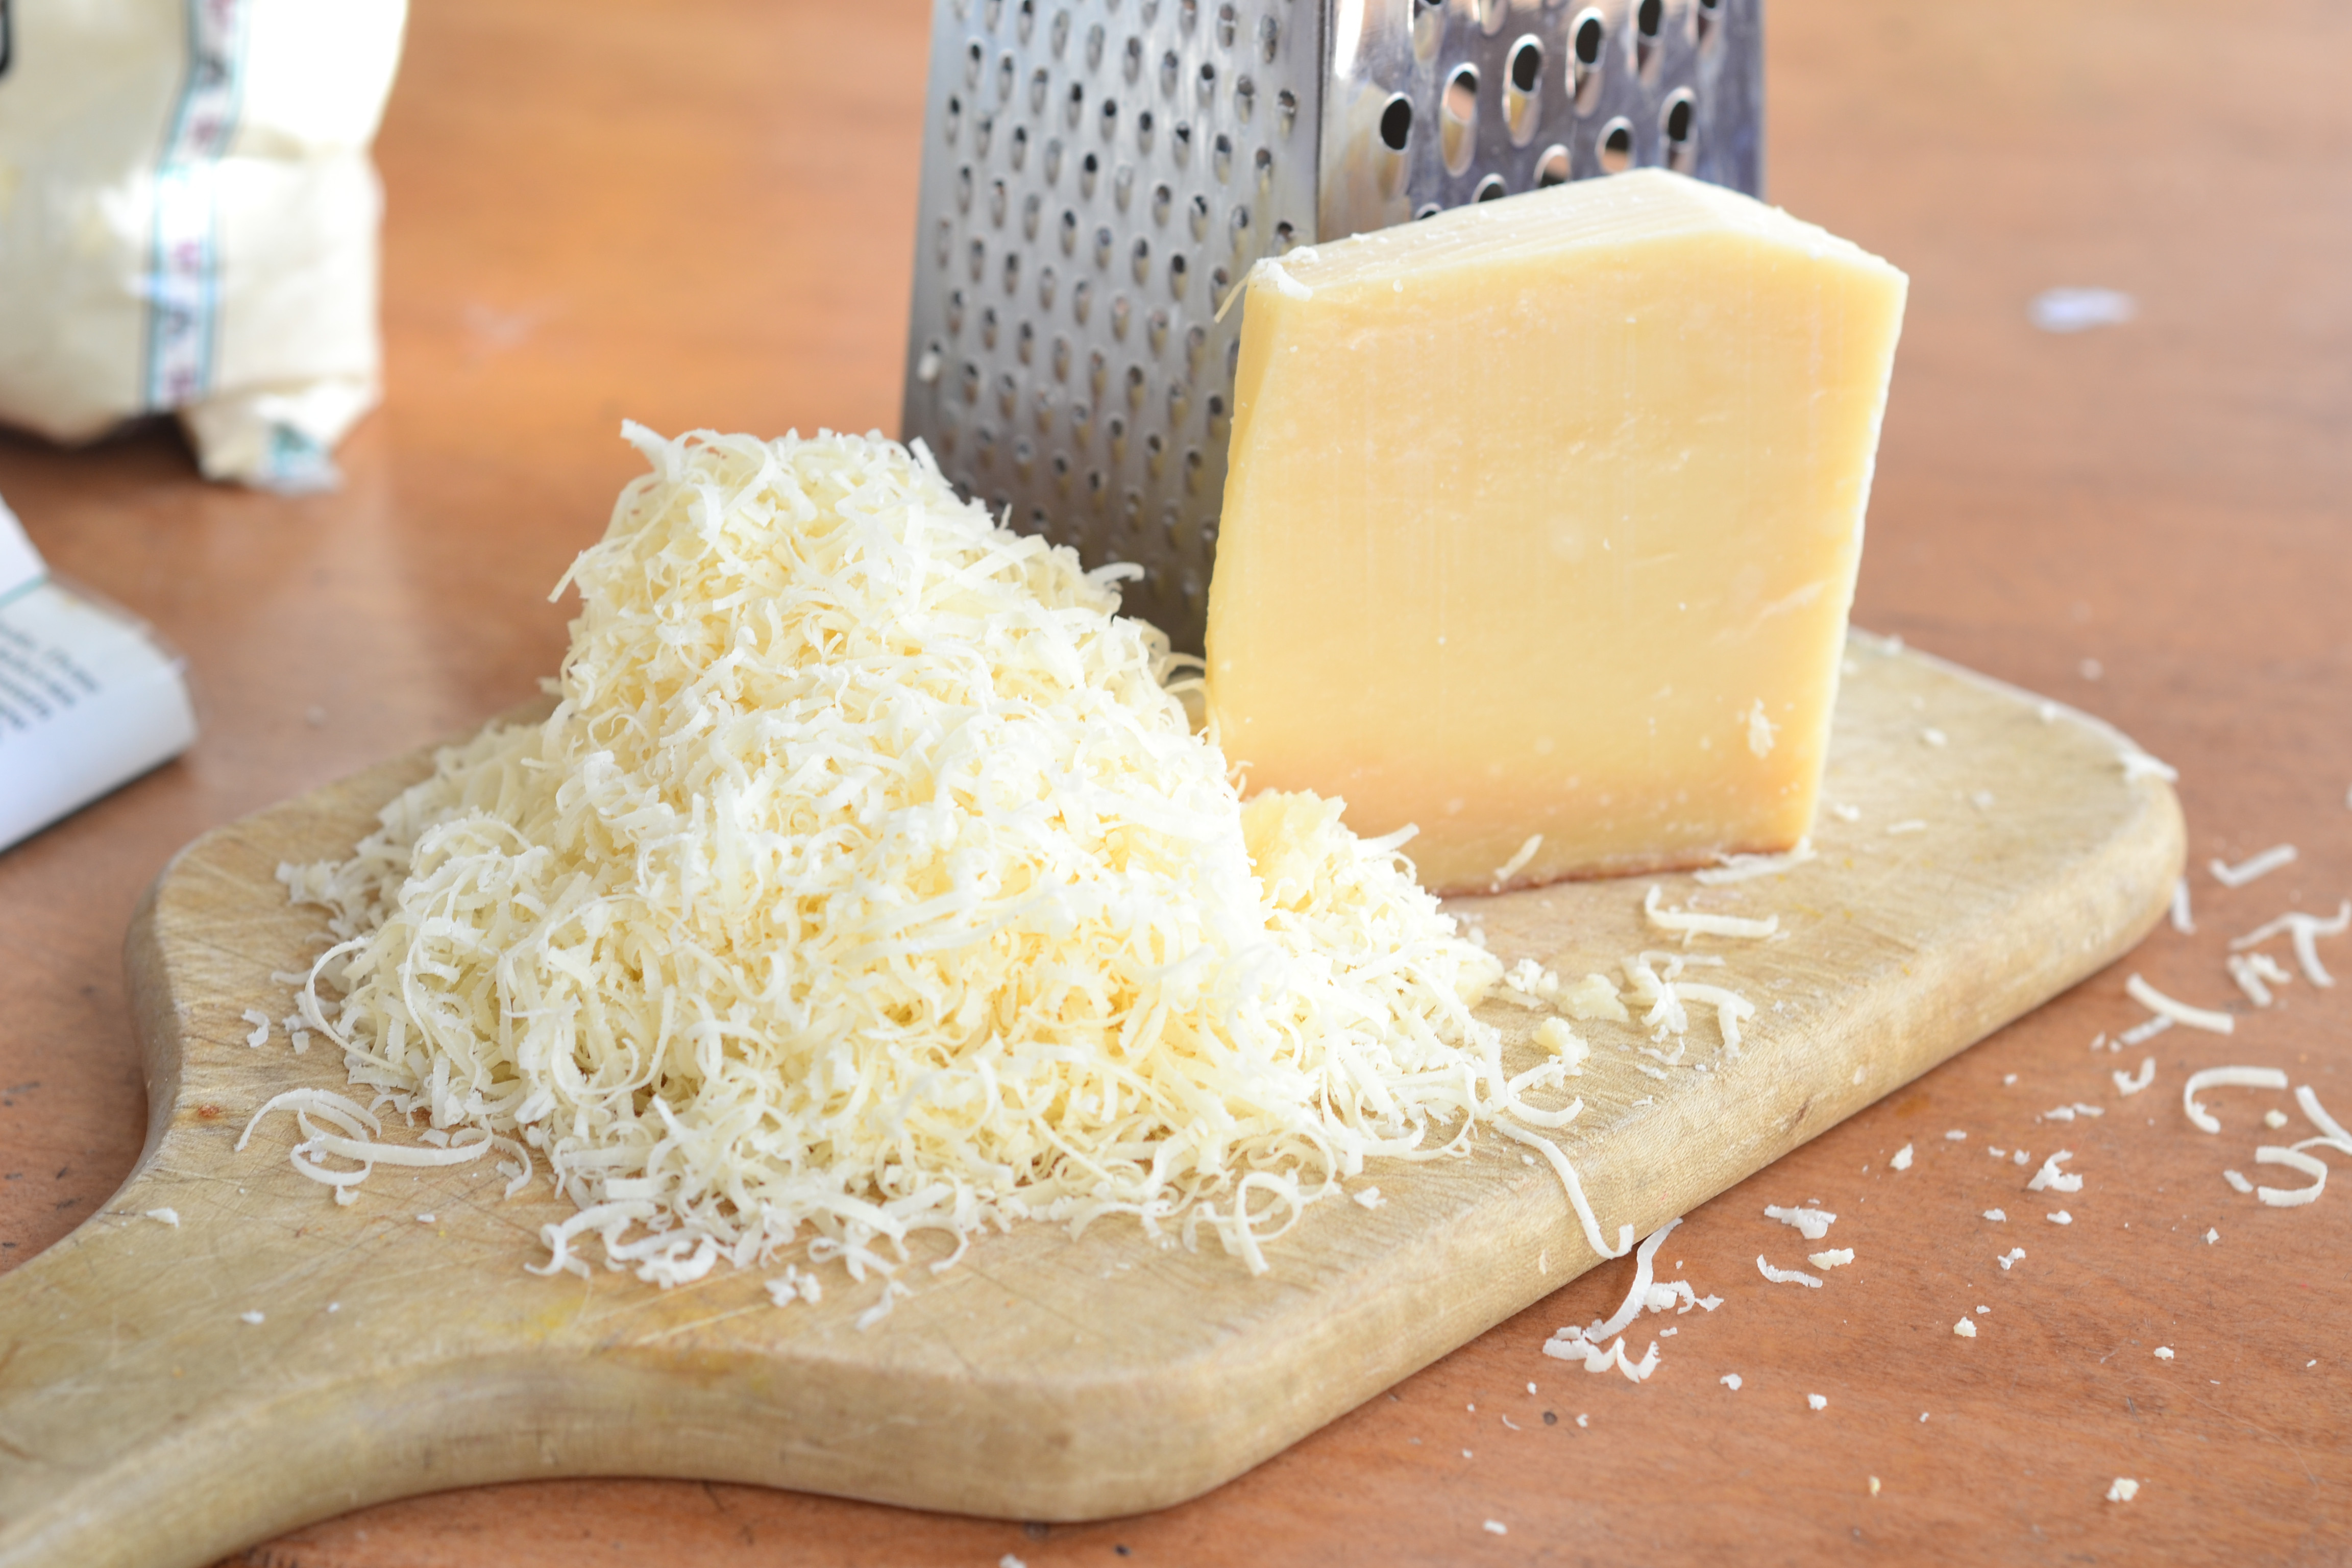 Parmesan Cheese Healthy  AVOID Grated Parmesan Cheese Contains Wood Cellulose